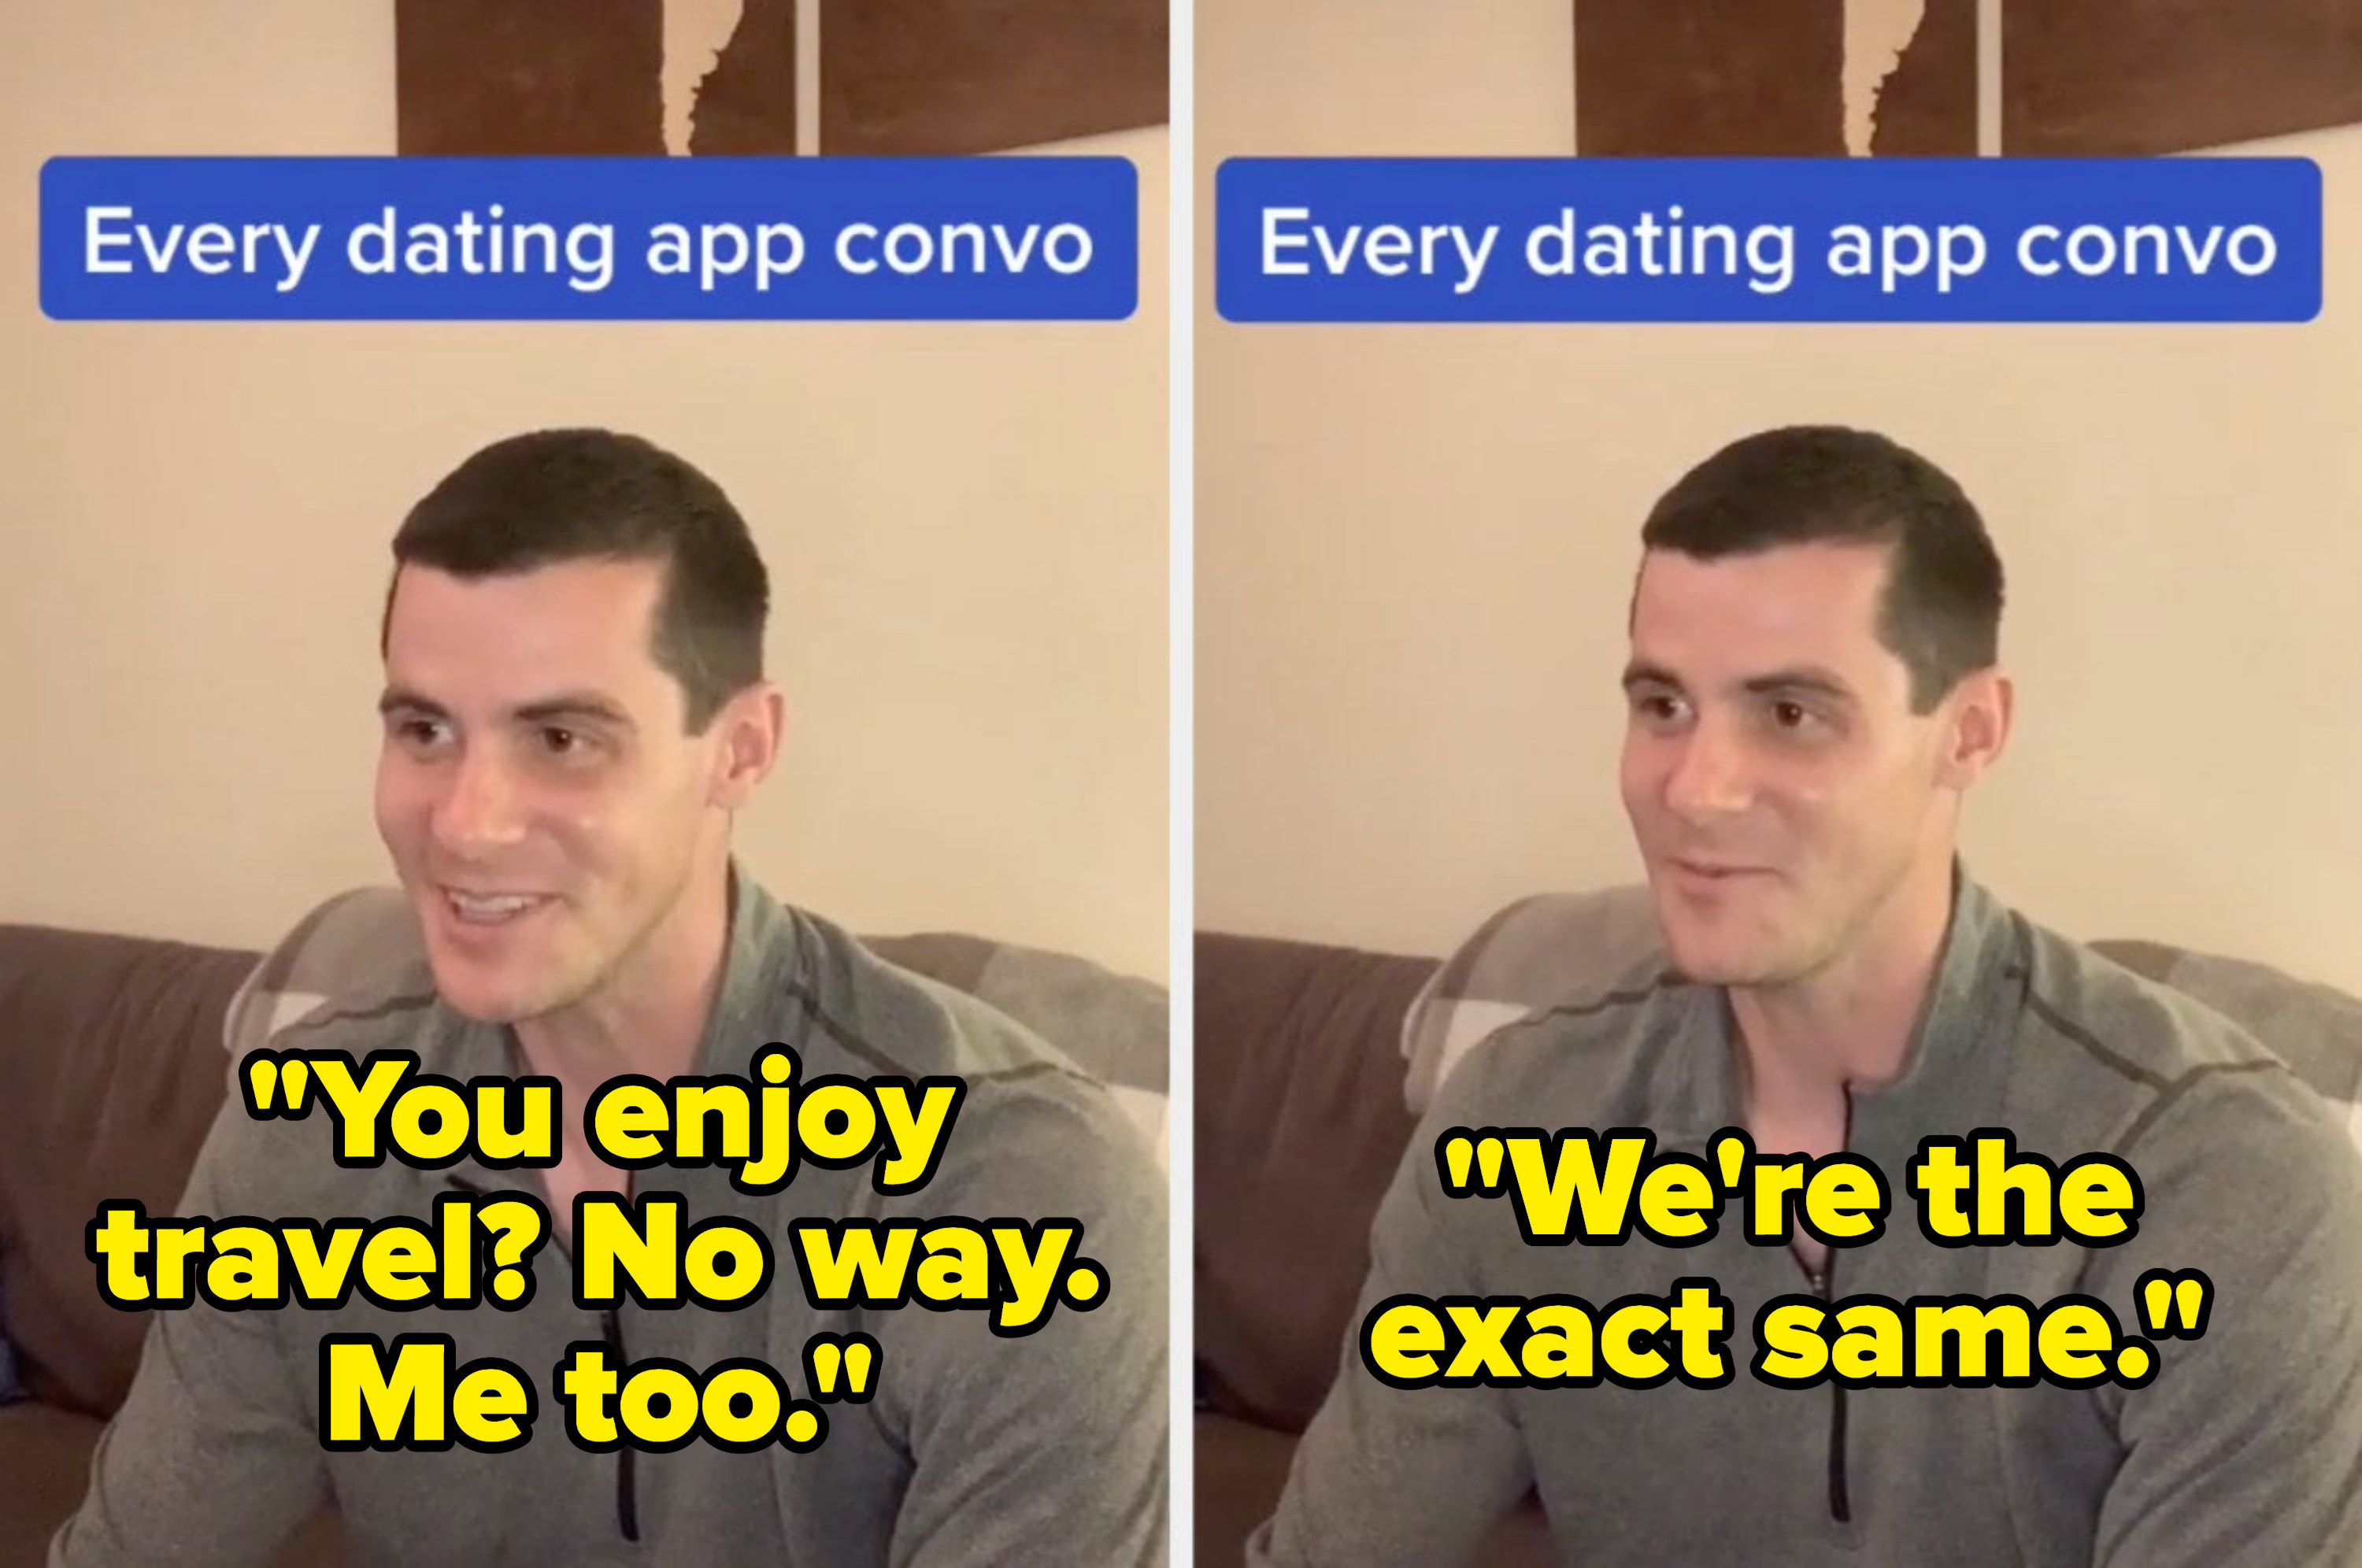 "The caption ""Every dating app convo"" with the typical dialogue: ""You enjoy travel? No way, me too; we're the exact same"""